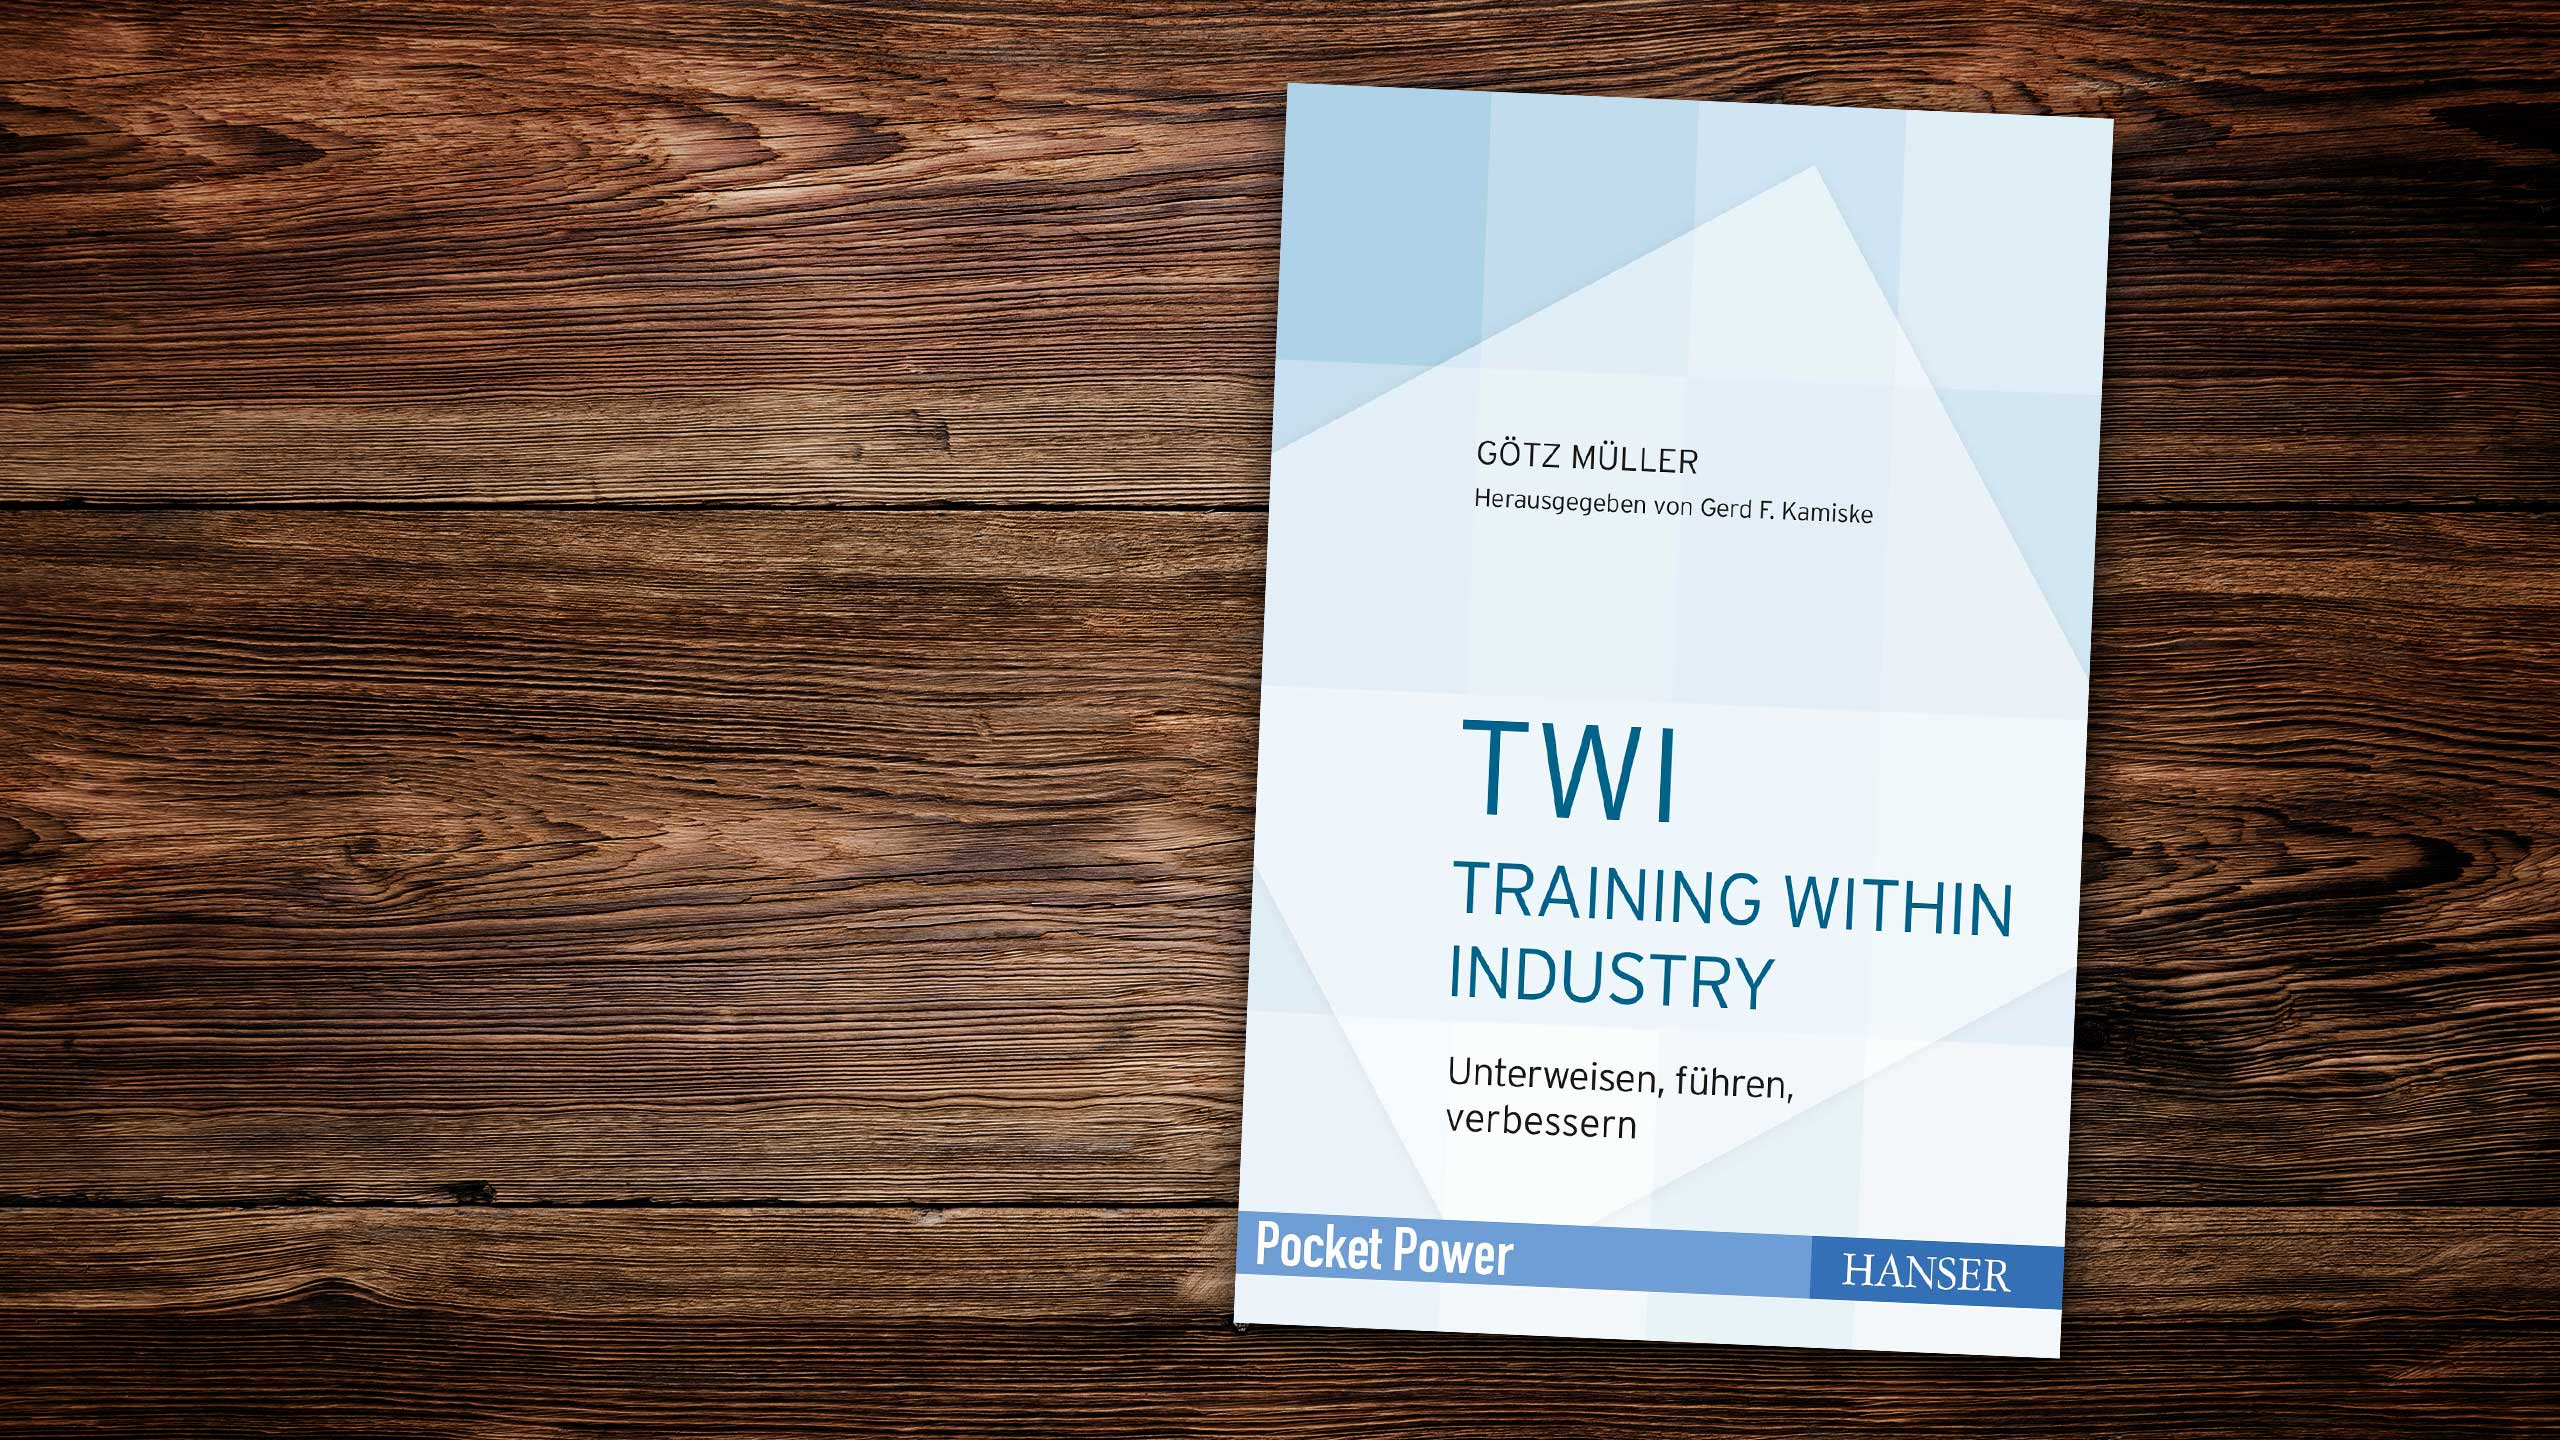 EnjoyWork LeseLust: TWI - Training Within Industry. Foto: copy Carl Hanser Verlag